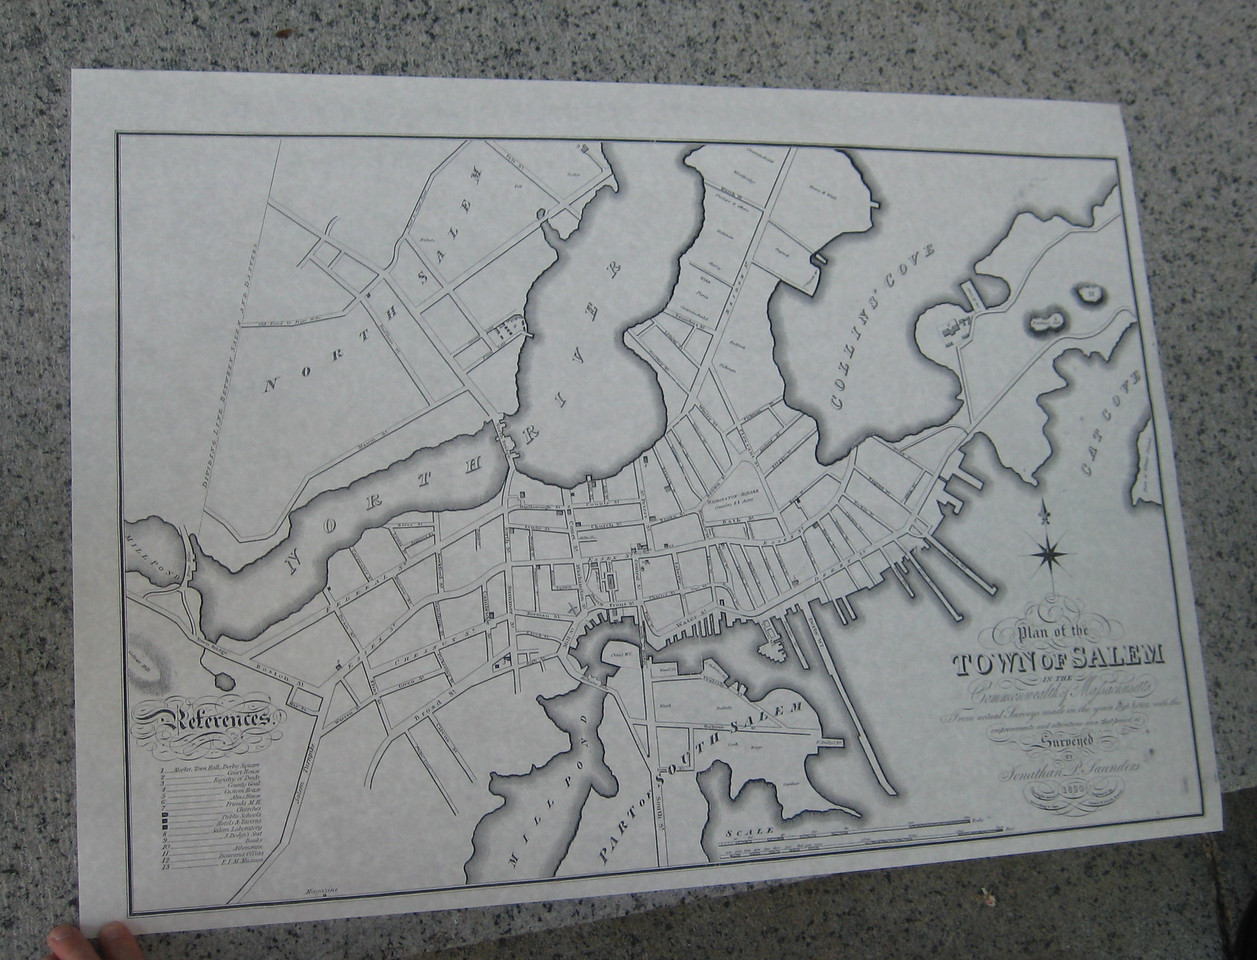 Copy of an 1820 map of Salem surveyed by Jonathan P. Saunders